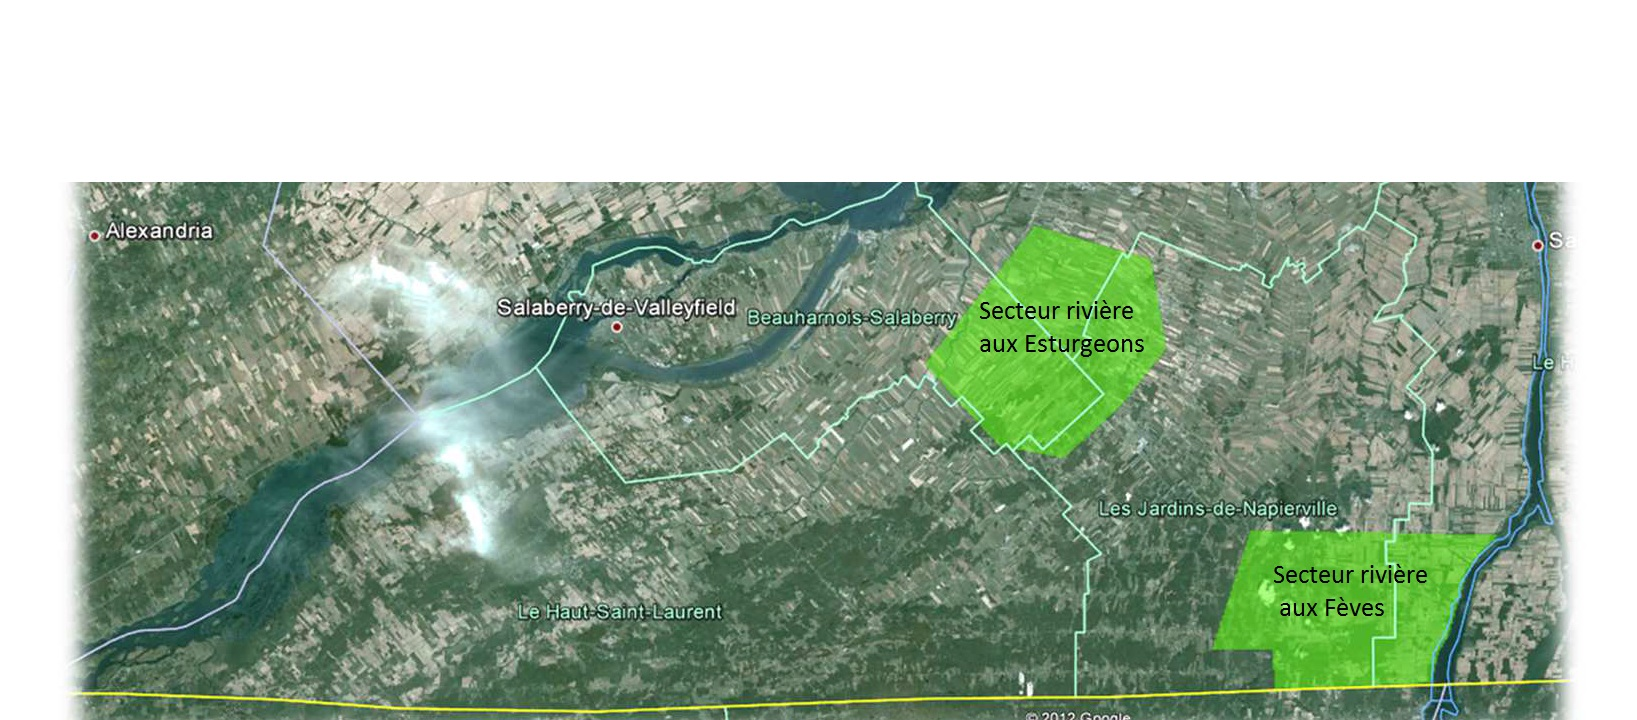 Canadian, provincial, and municipal government geospatial data